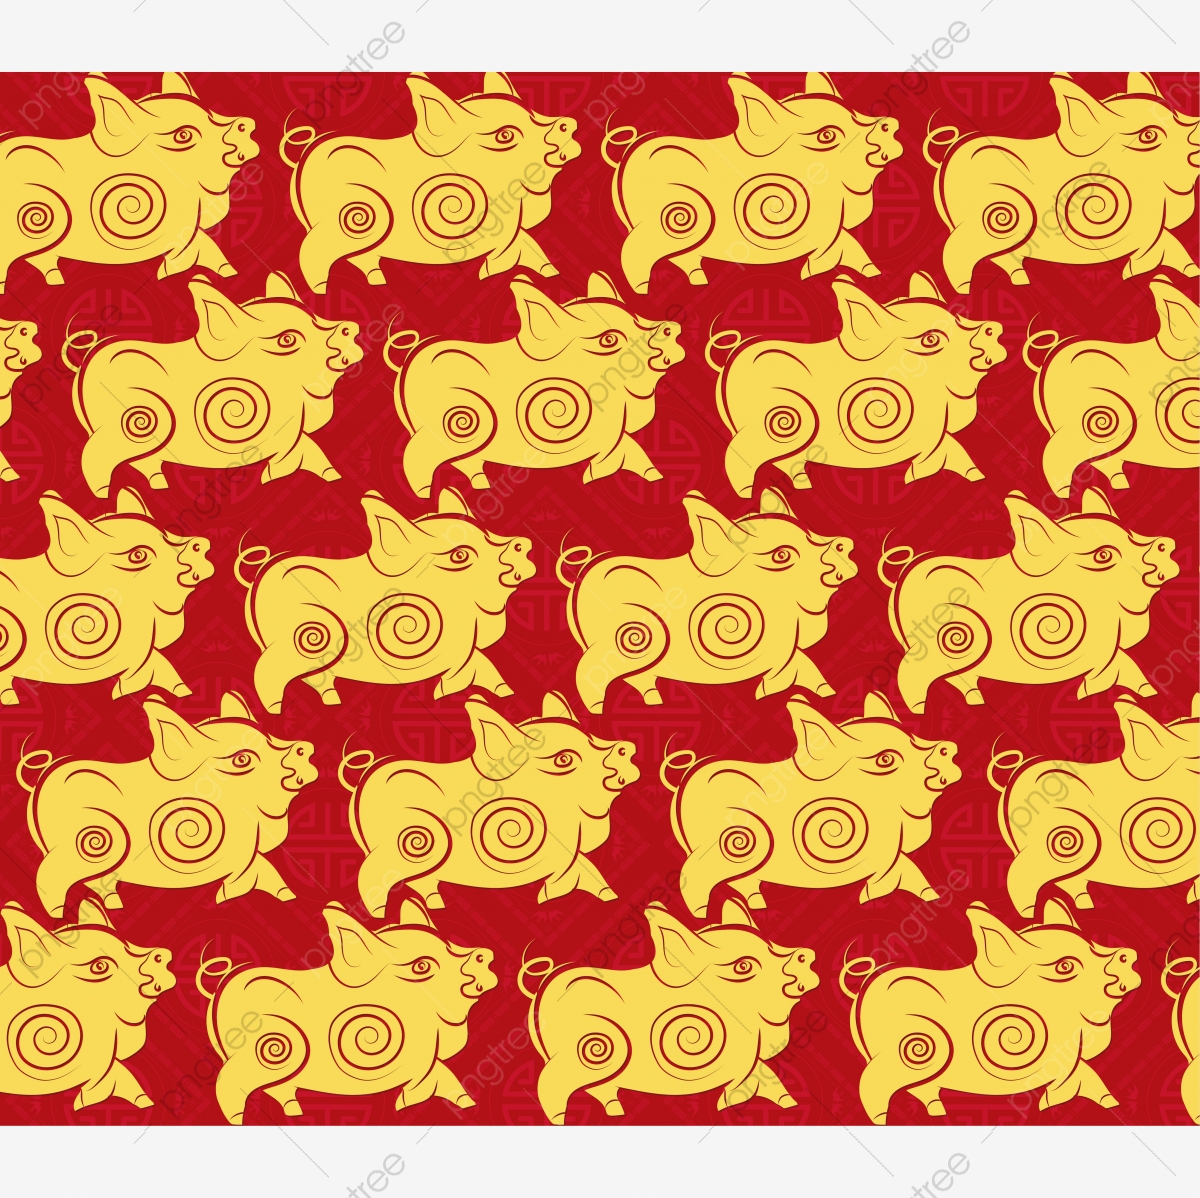 Commercial use resource upgrade to premium plan and get license authorization upgradenow · chinese new year pattern